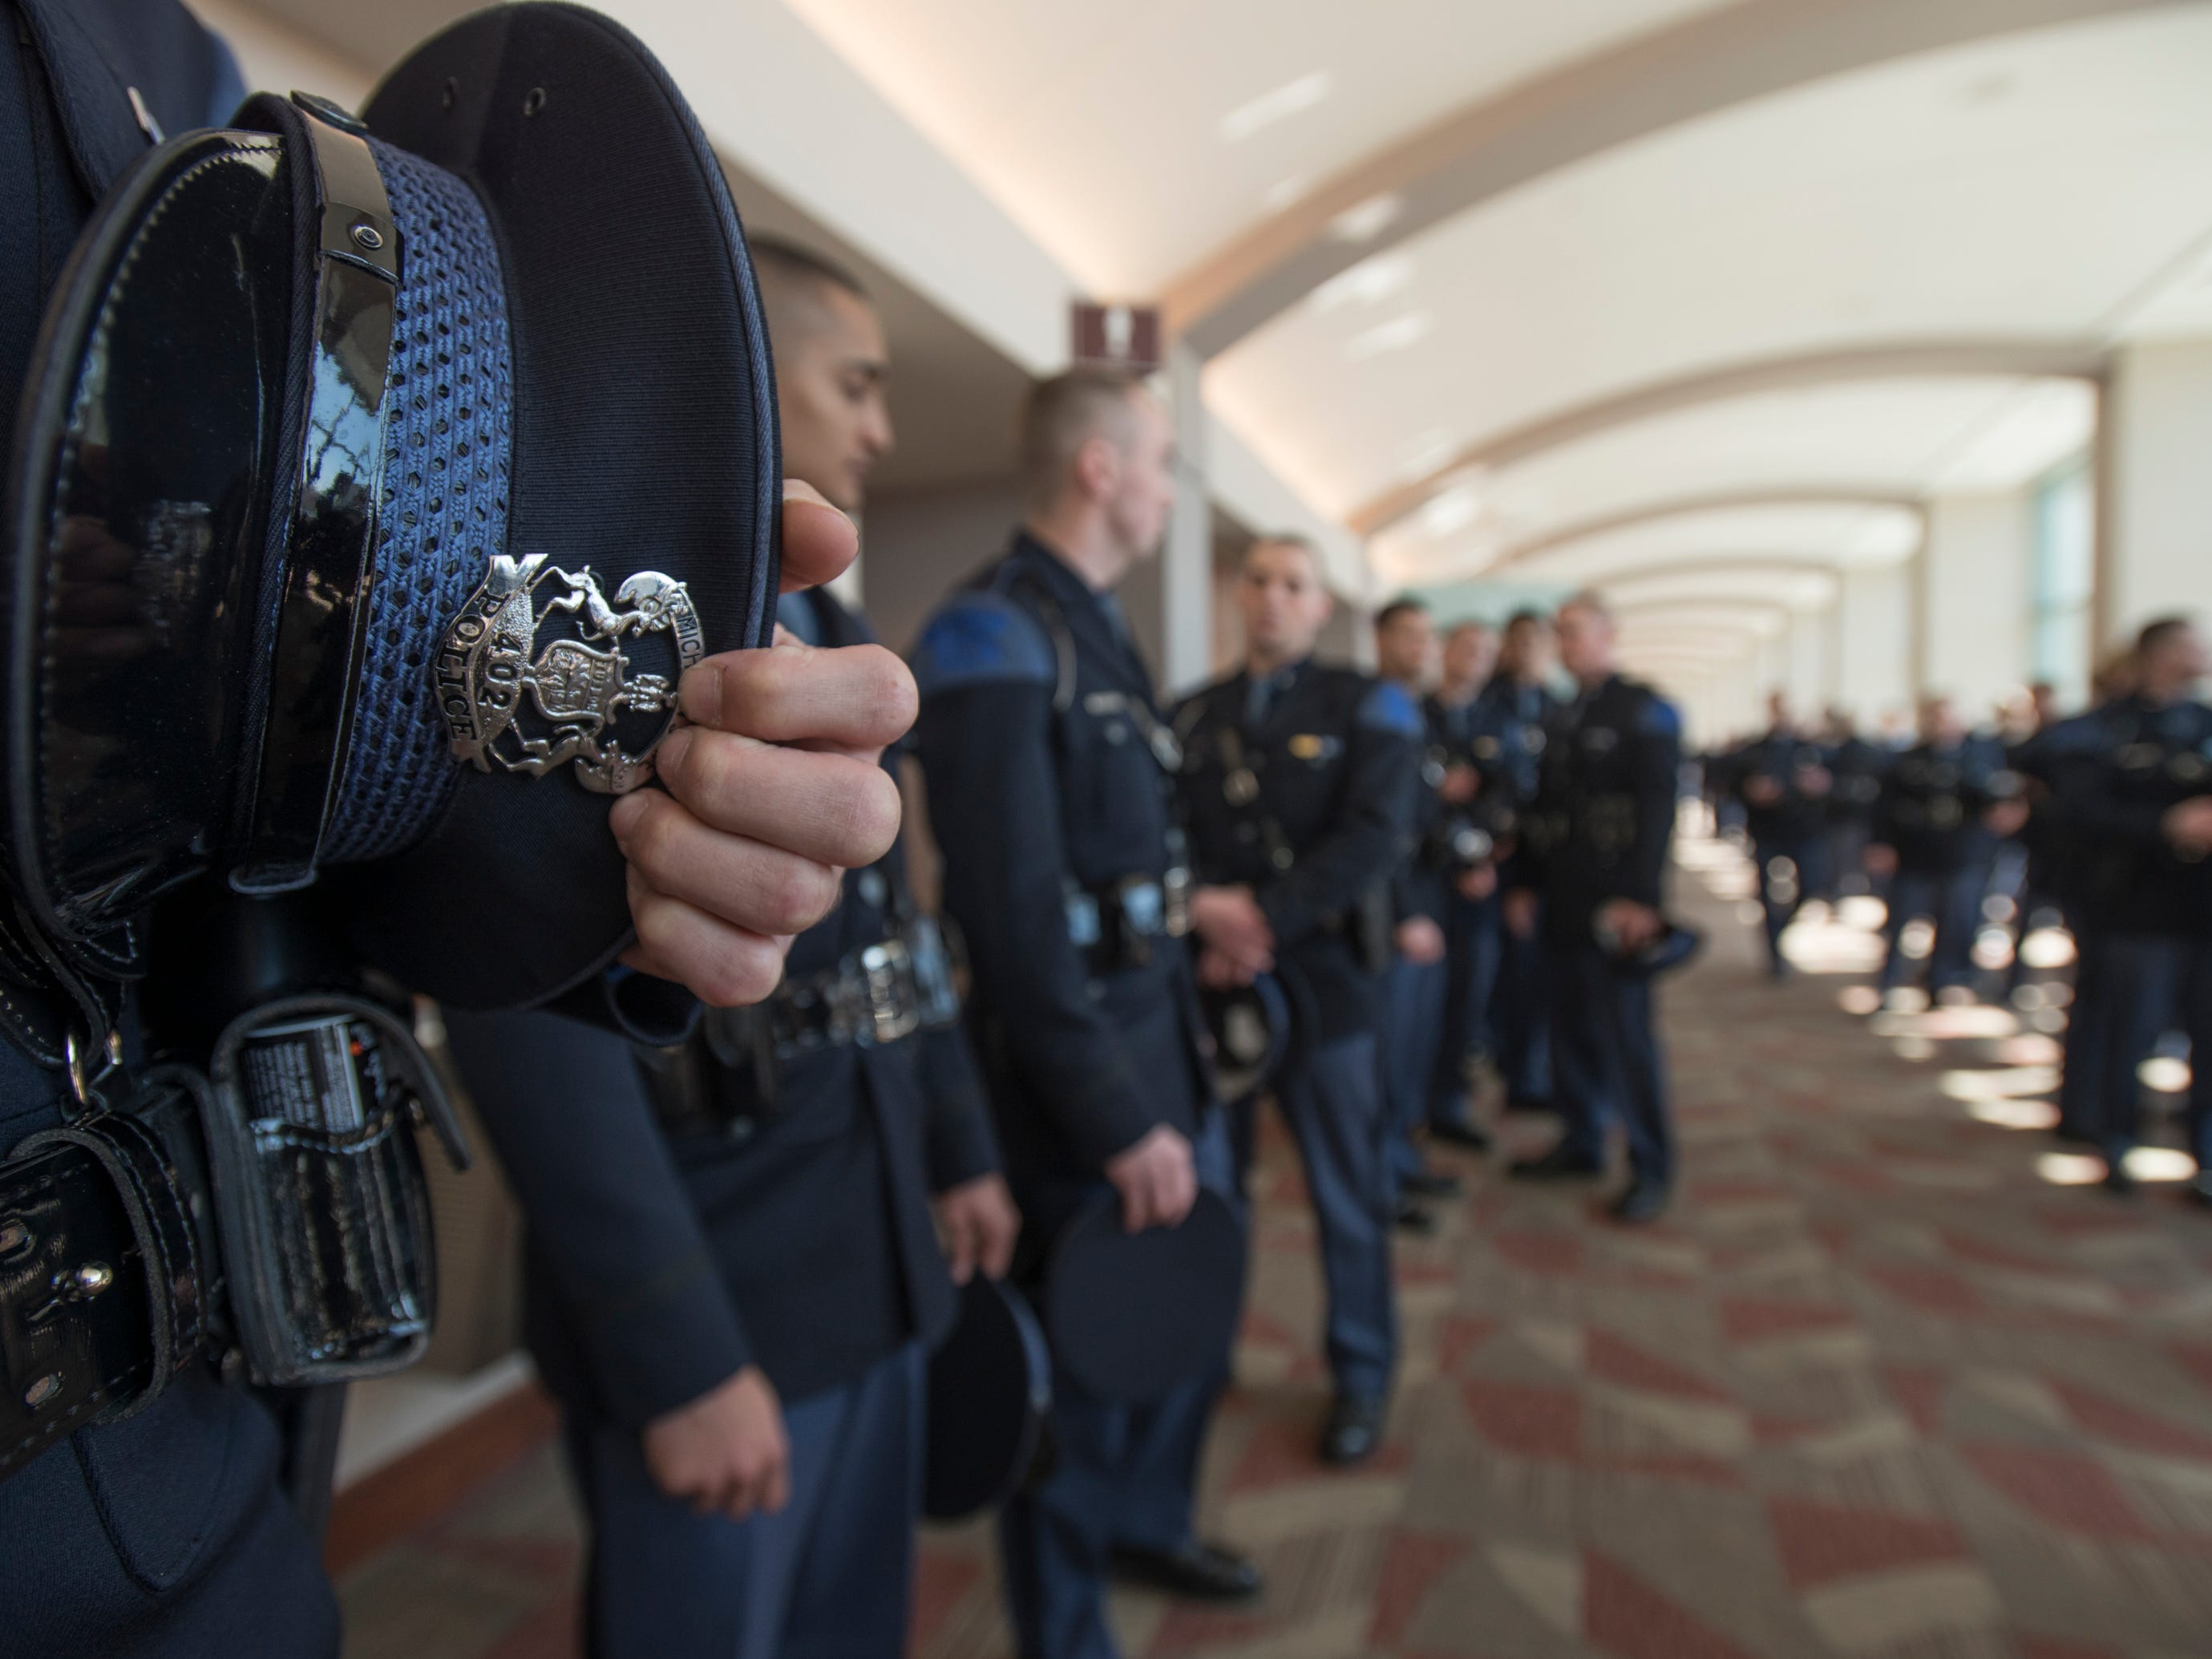 101 new Michigan State Police state troopers were sworn in Wednesday, April 3, 2019, during the 135th Michigan State Police Trooper Recruit School graduation at the Lansing Center in downtown Lansing.